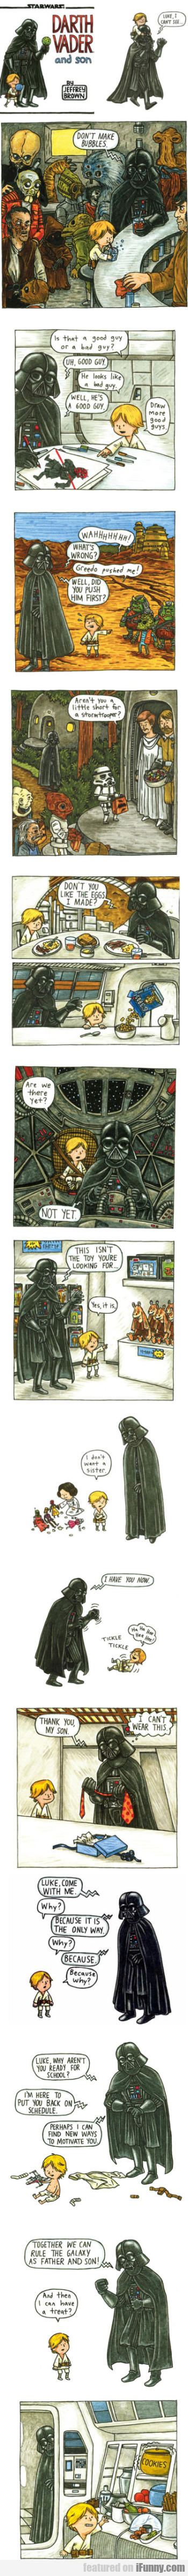 Darth Vader And Son - Luke I Can't See